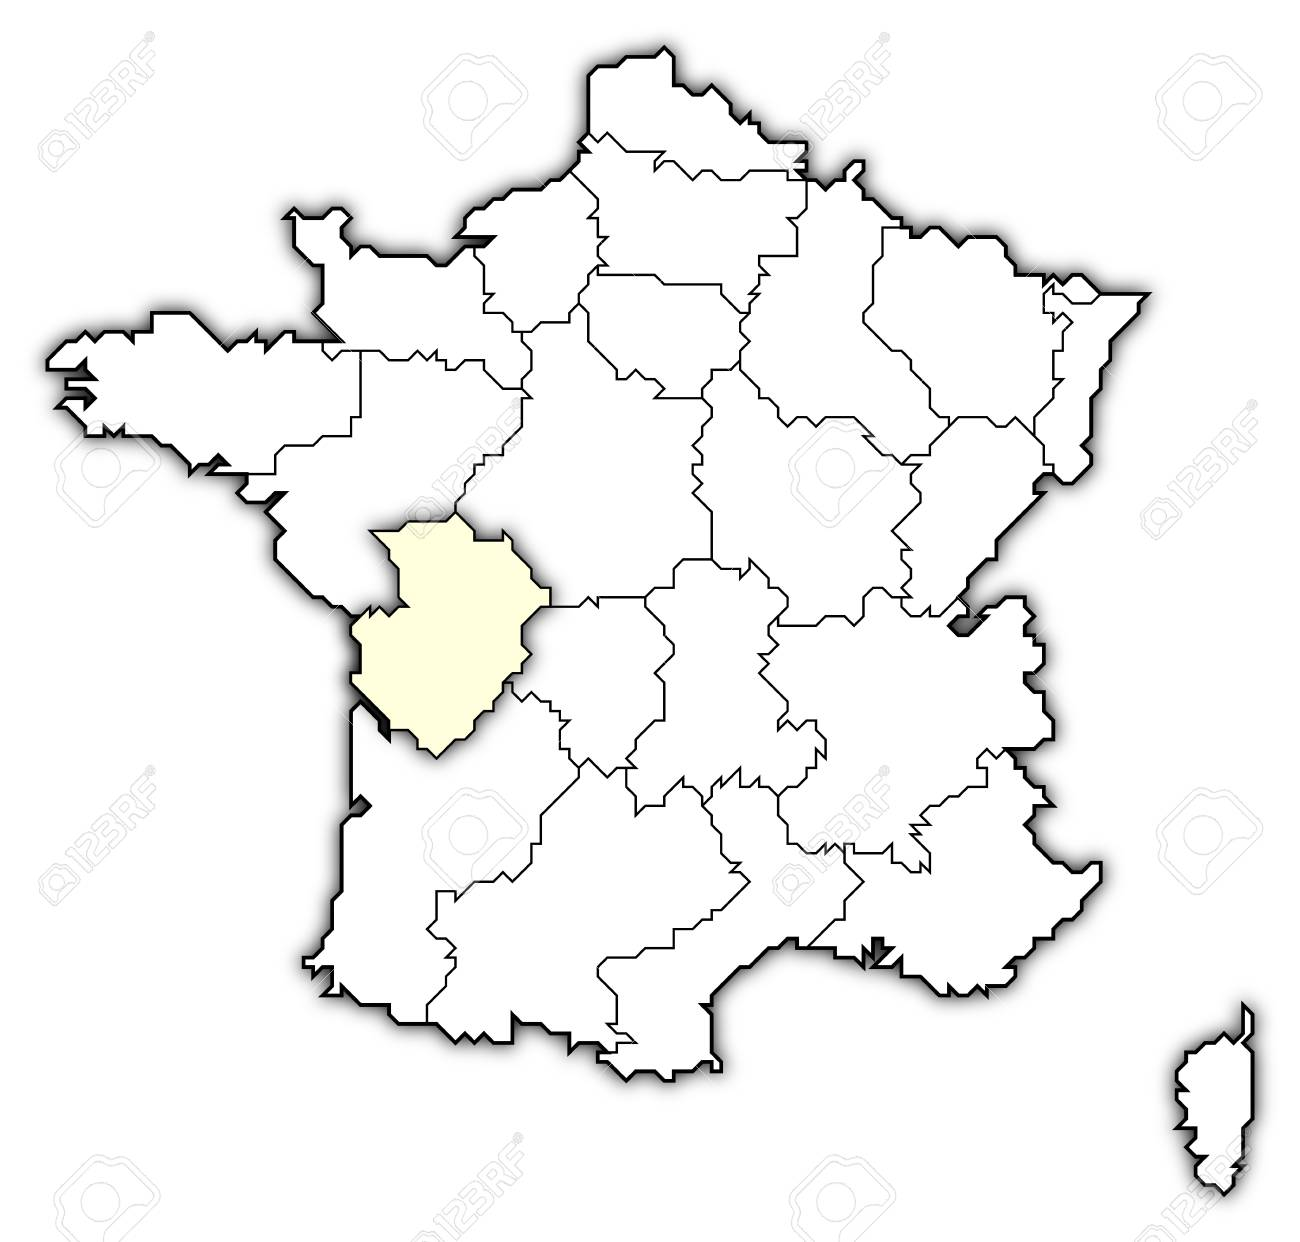 Poitou France Map.Political Map Of France With The Several Regions Where Poitou